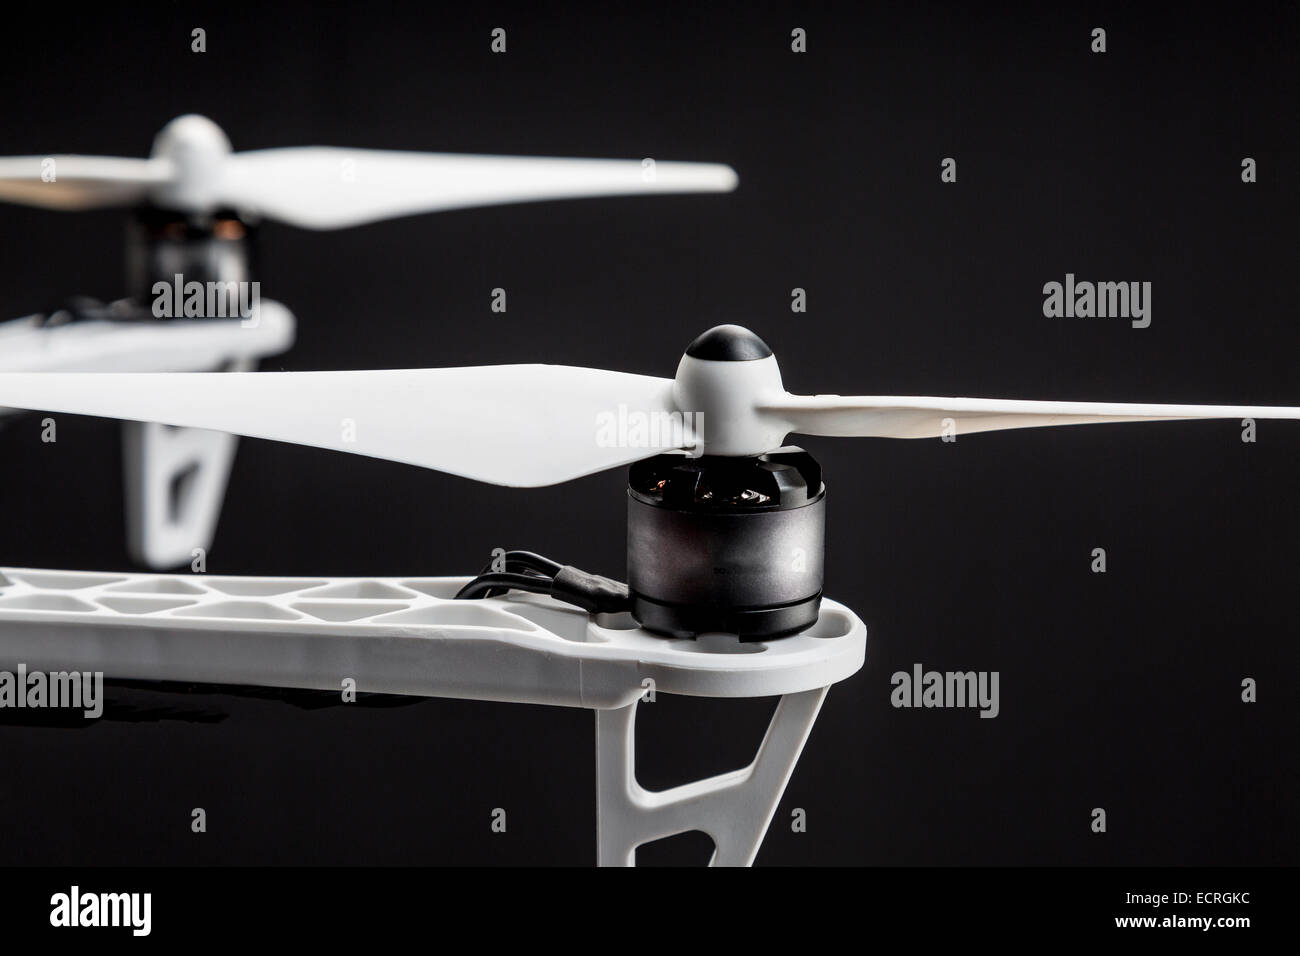 propellers of a hexacopter drone against black background - Stock Image